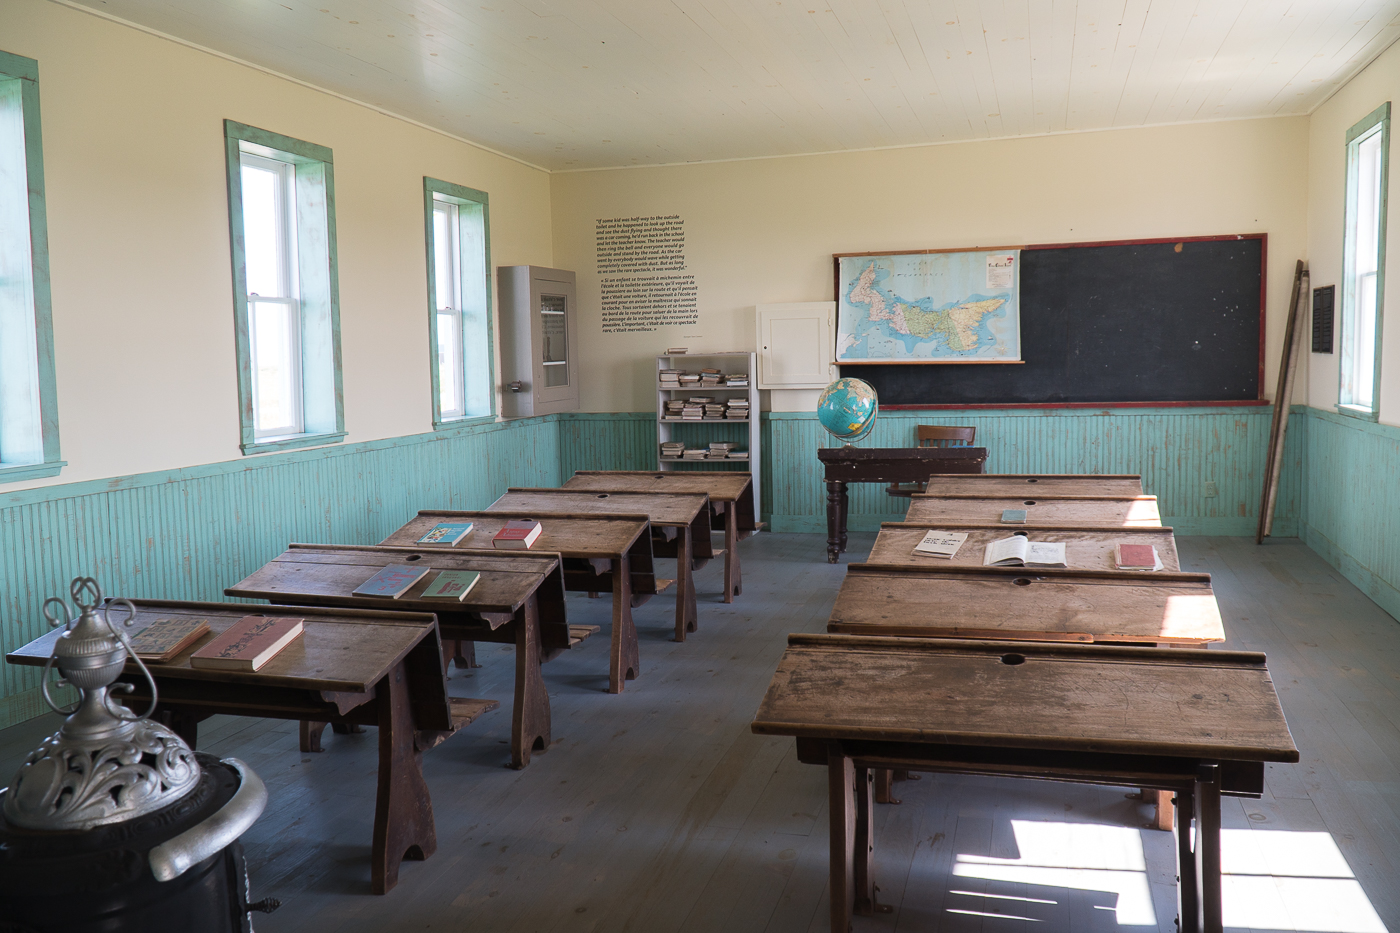 Petite école Stompin Tom Centre Homestead and Schoolhouse